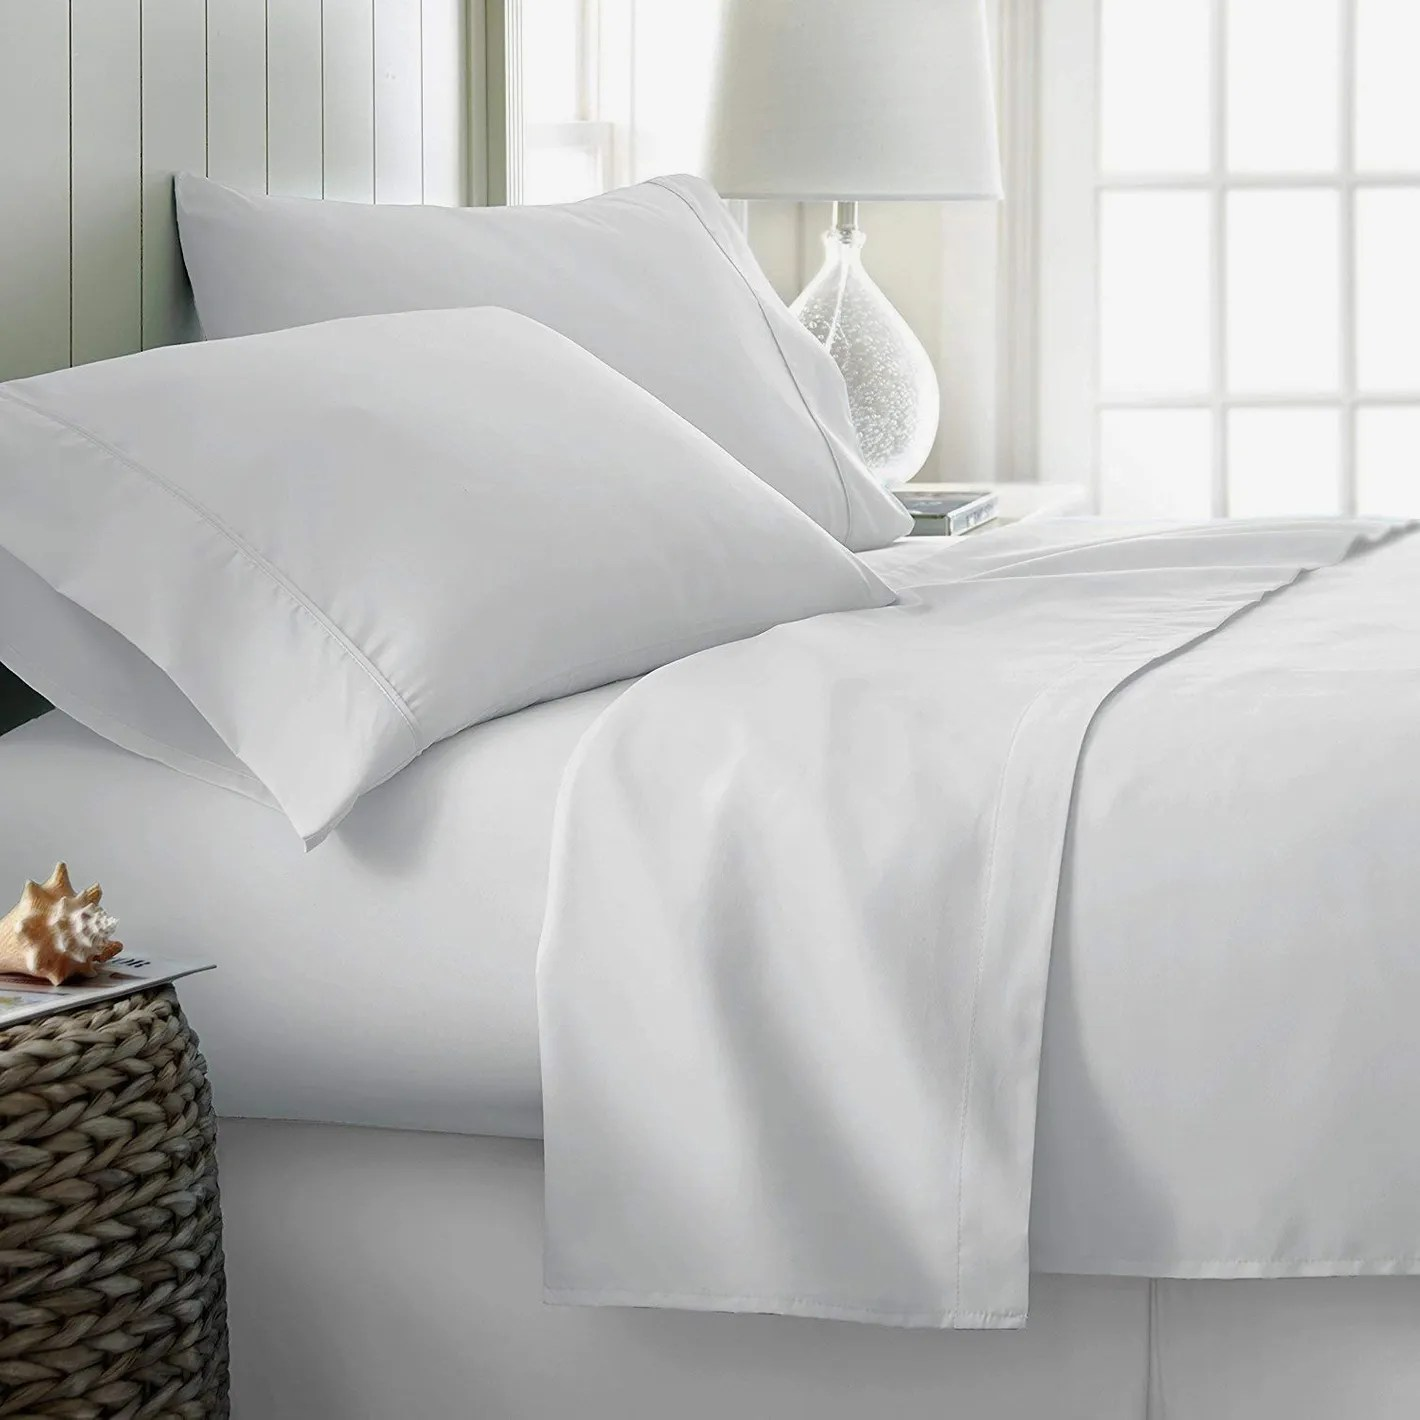 100 Egyptian Cotton Sheets 7 Best Egyptian Cotton Sheets 2019